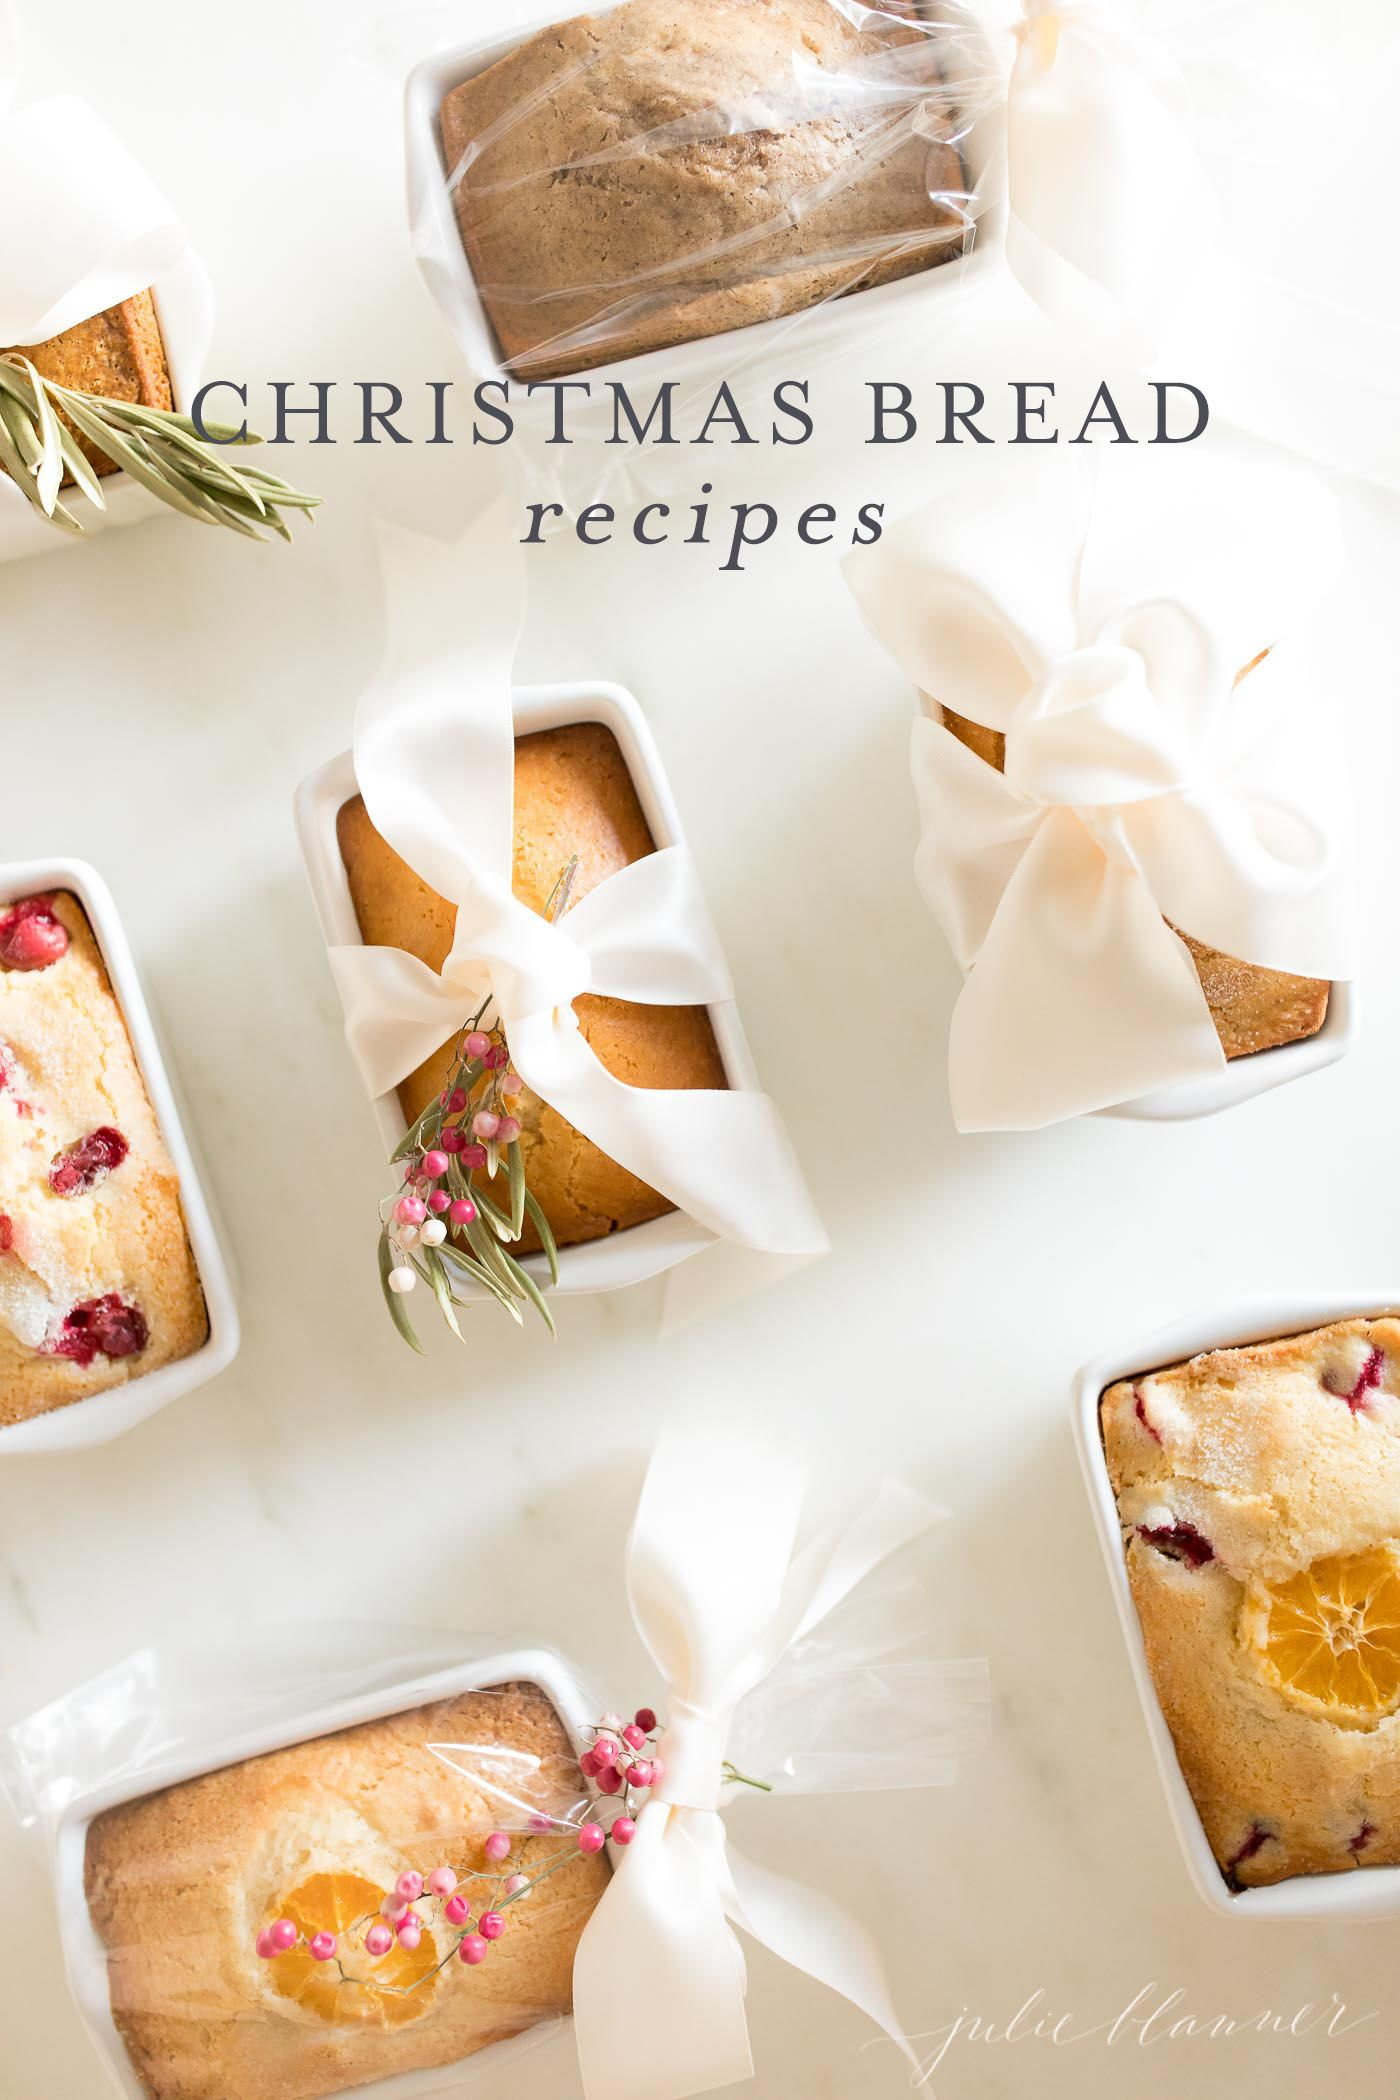 The Best Christmas Bread Recipes For Gifting In Just 5 Minutes